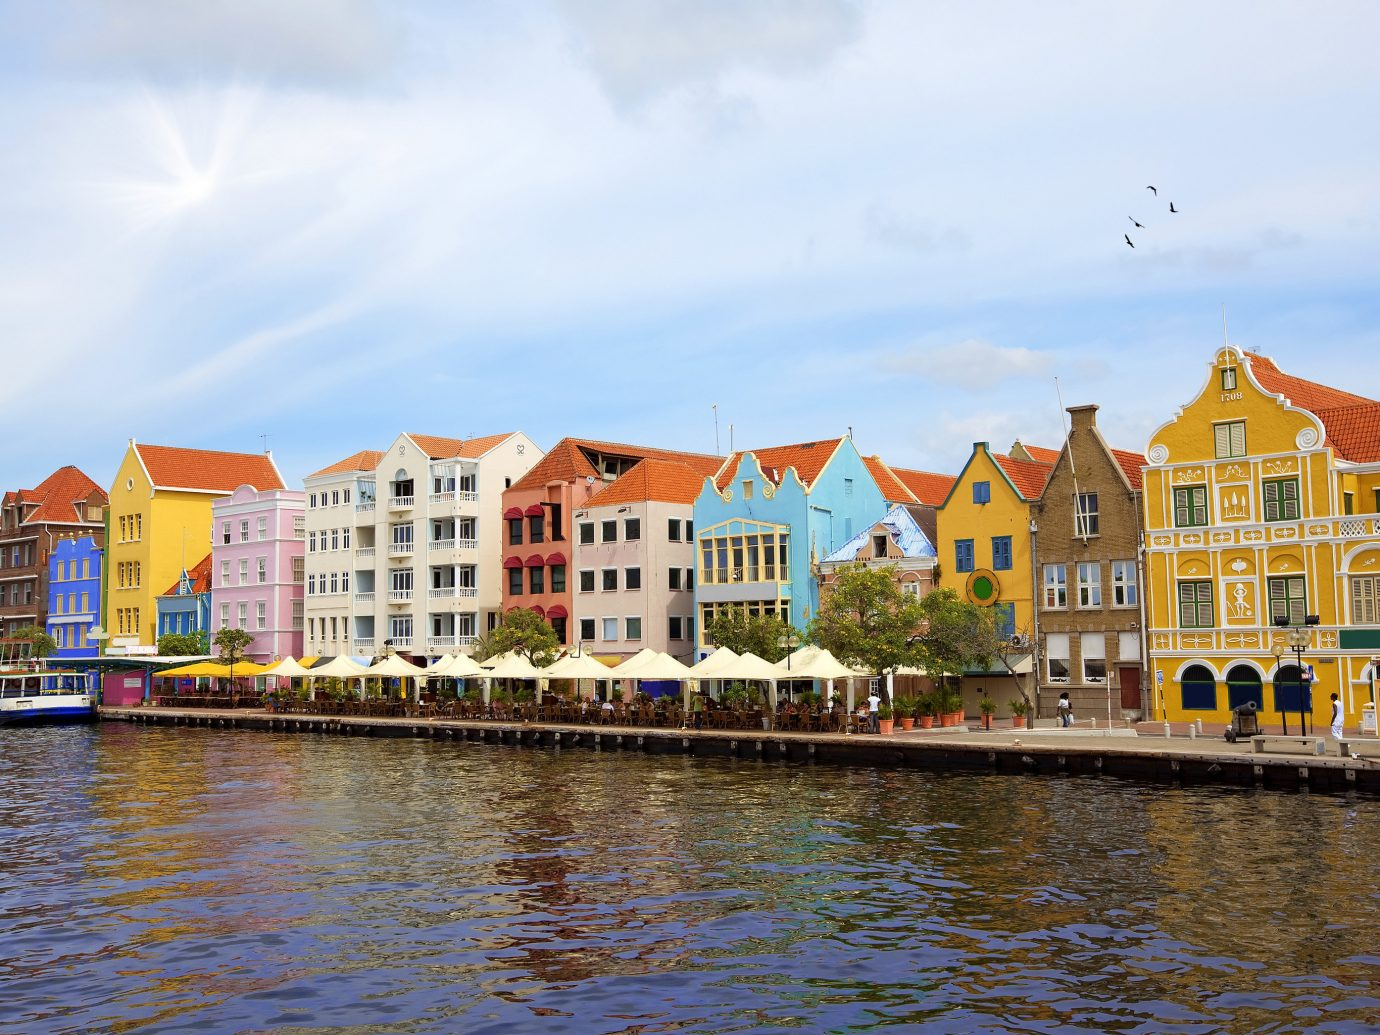 Trip Ideas sky outdoor water Boat Town body of water scene River Harbor cityscape vacation waterway tourism Sea vehicle reflection Canal